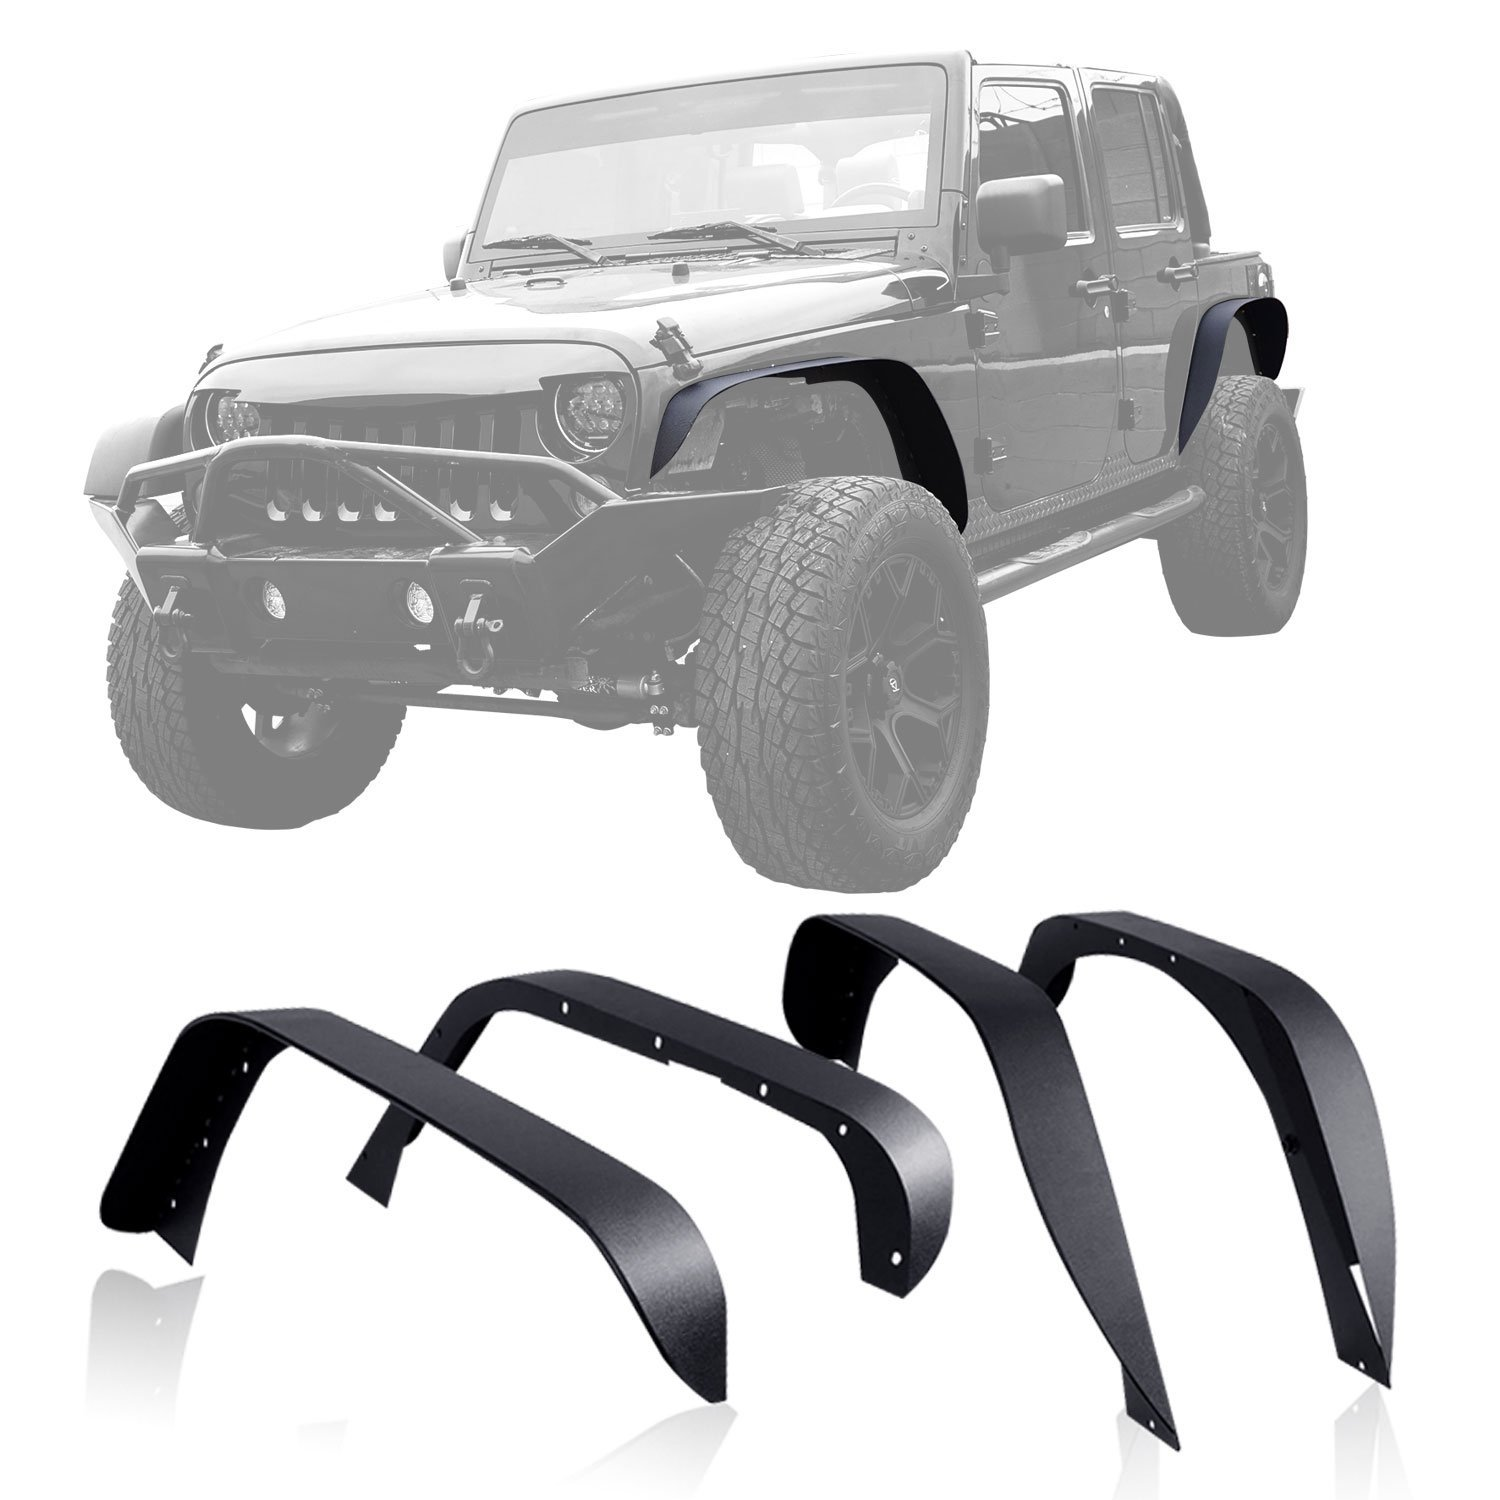 Set Lantsun J064 Tuxtured Steel Flat Style Fender Flares For 2007-2017 Jeep Wrangler JK Unlimited j184 lantsun pair of foot pegs for 2007 2016 jeep wrangler jk 2dr 4dr